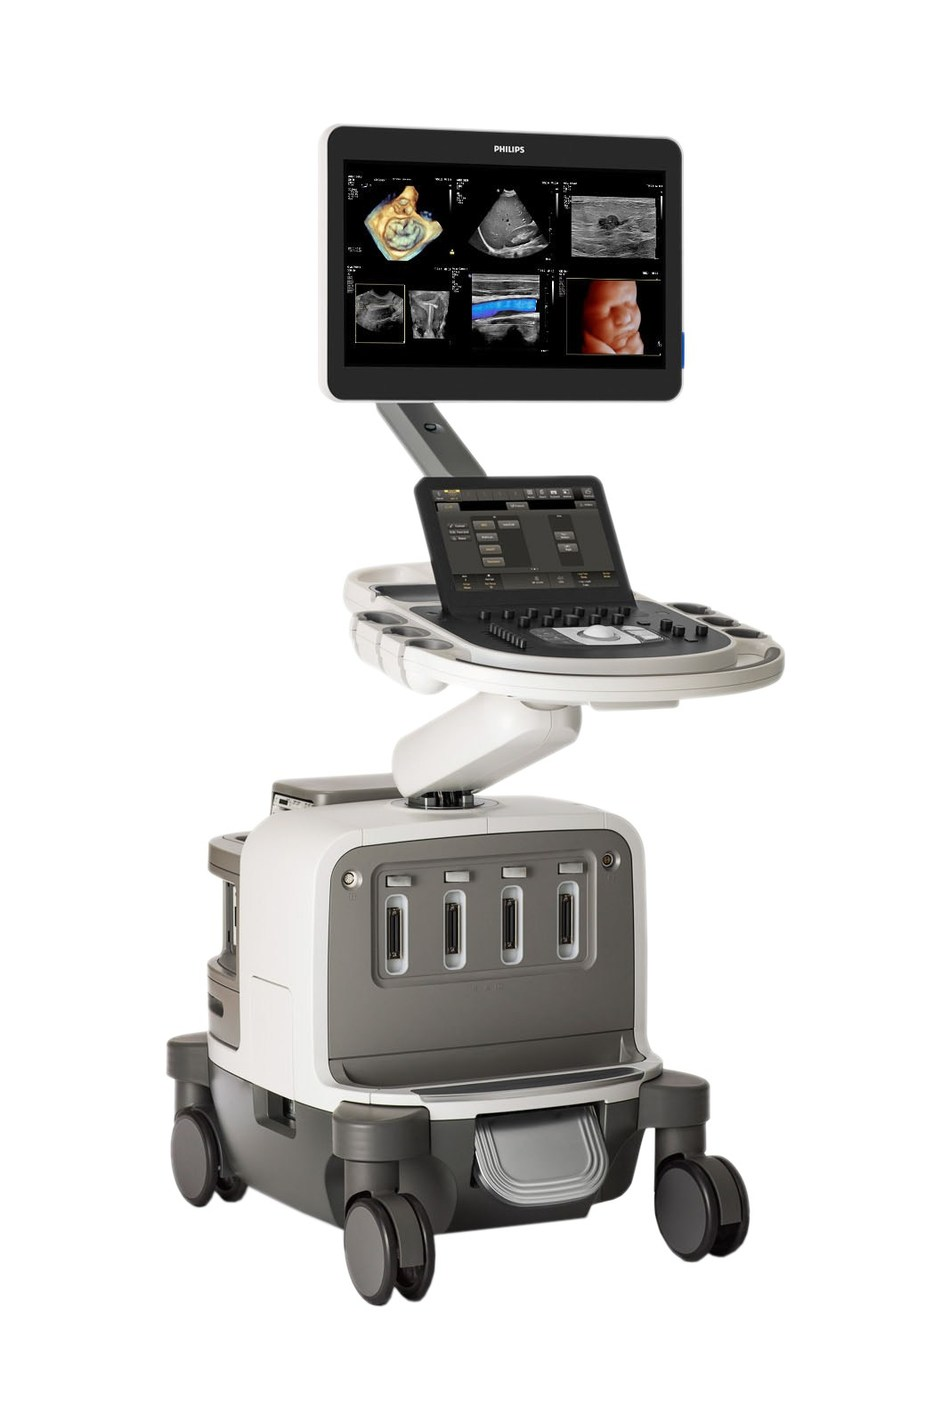 The Philips EPIQ Elite premium ultrasound system offers a range of diagnostic ultrasound solutions tailored to meet the needs of specific medical specialties, to improve clinical confidence and the patient experience.